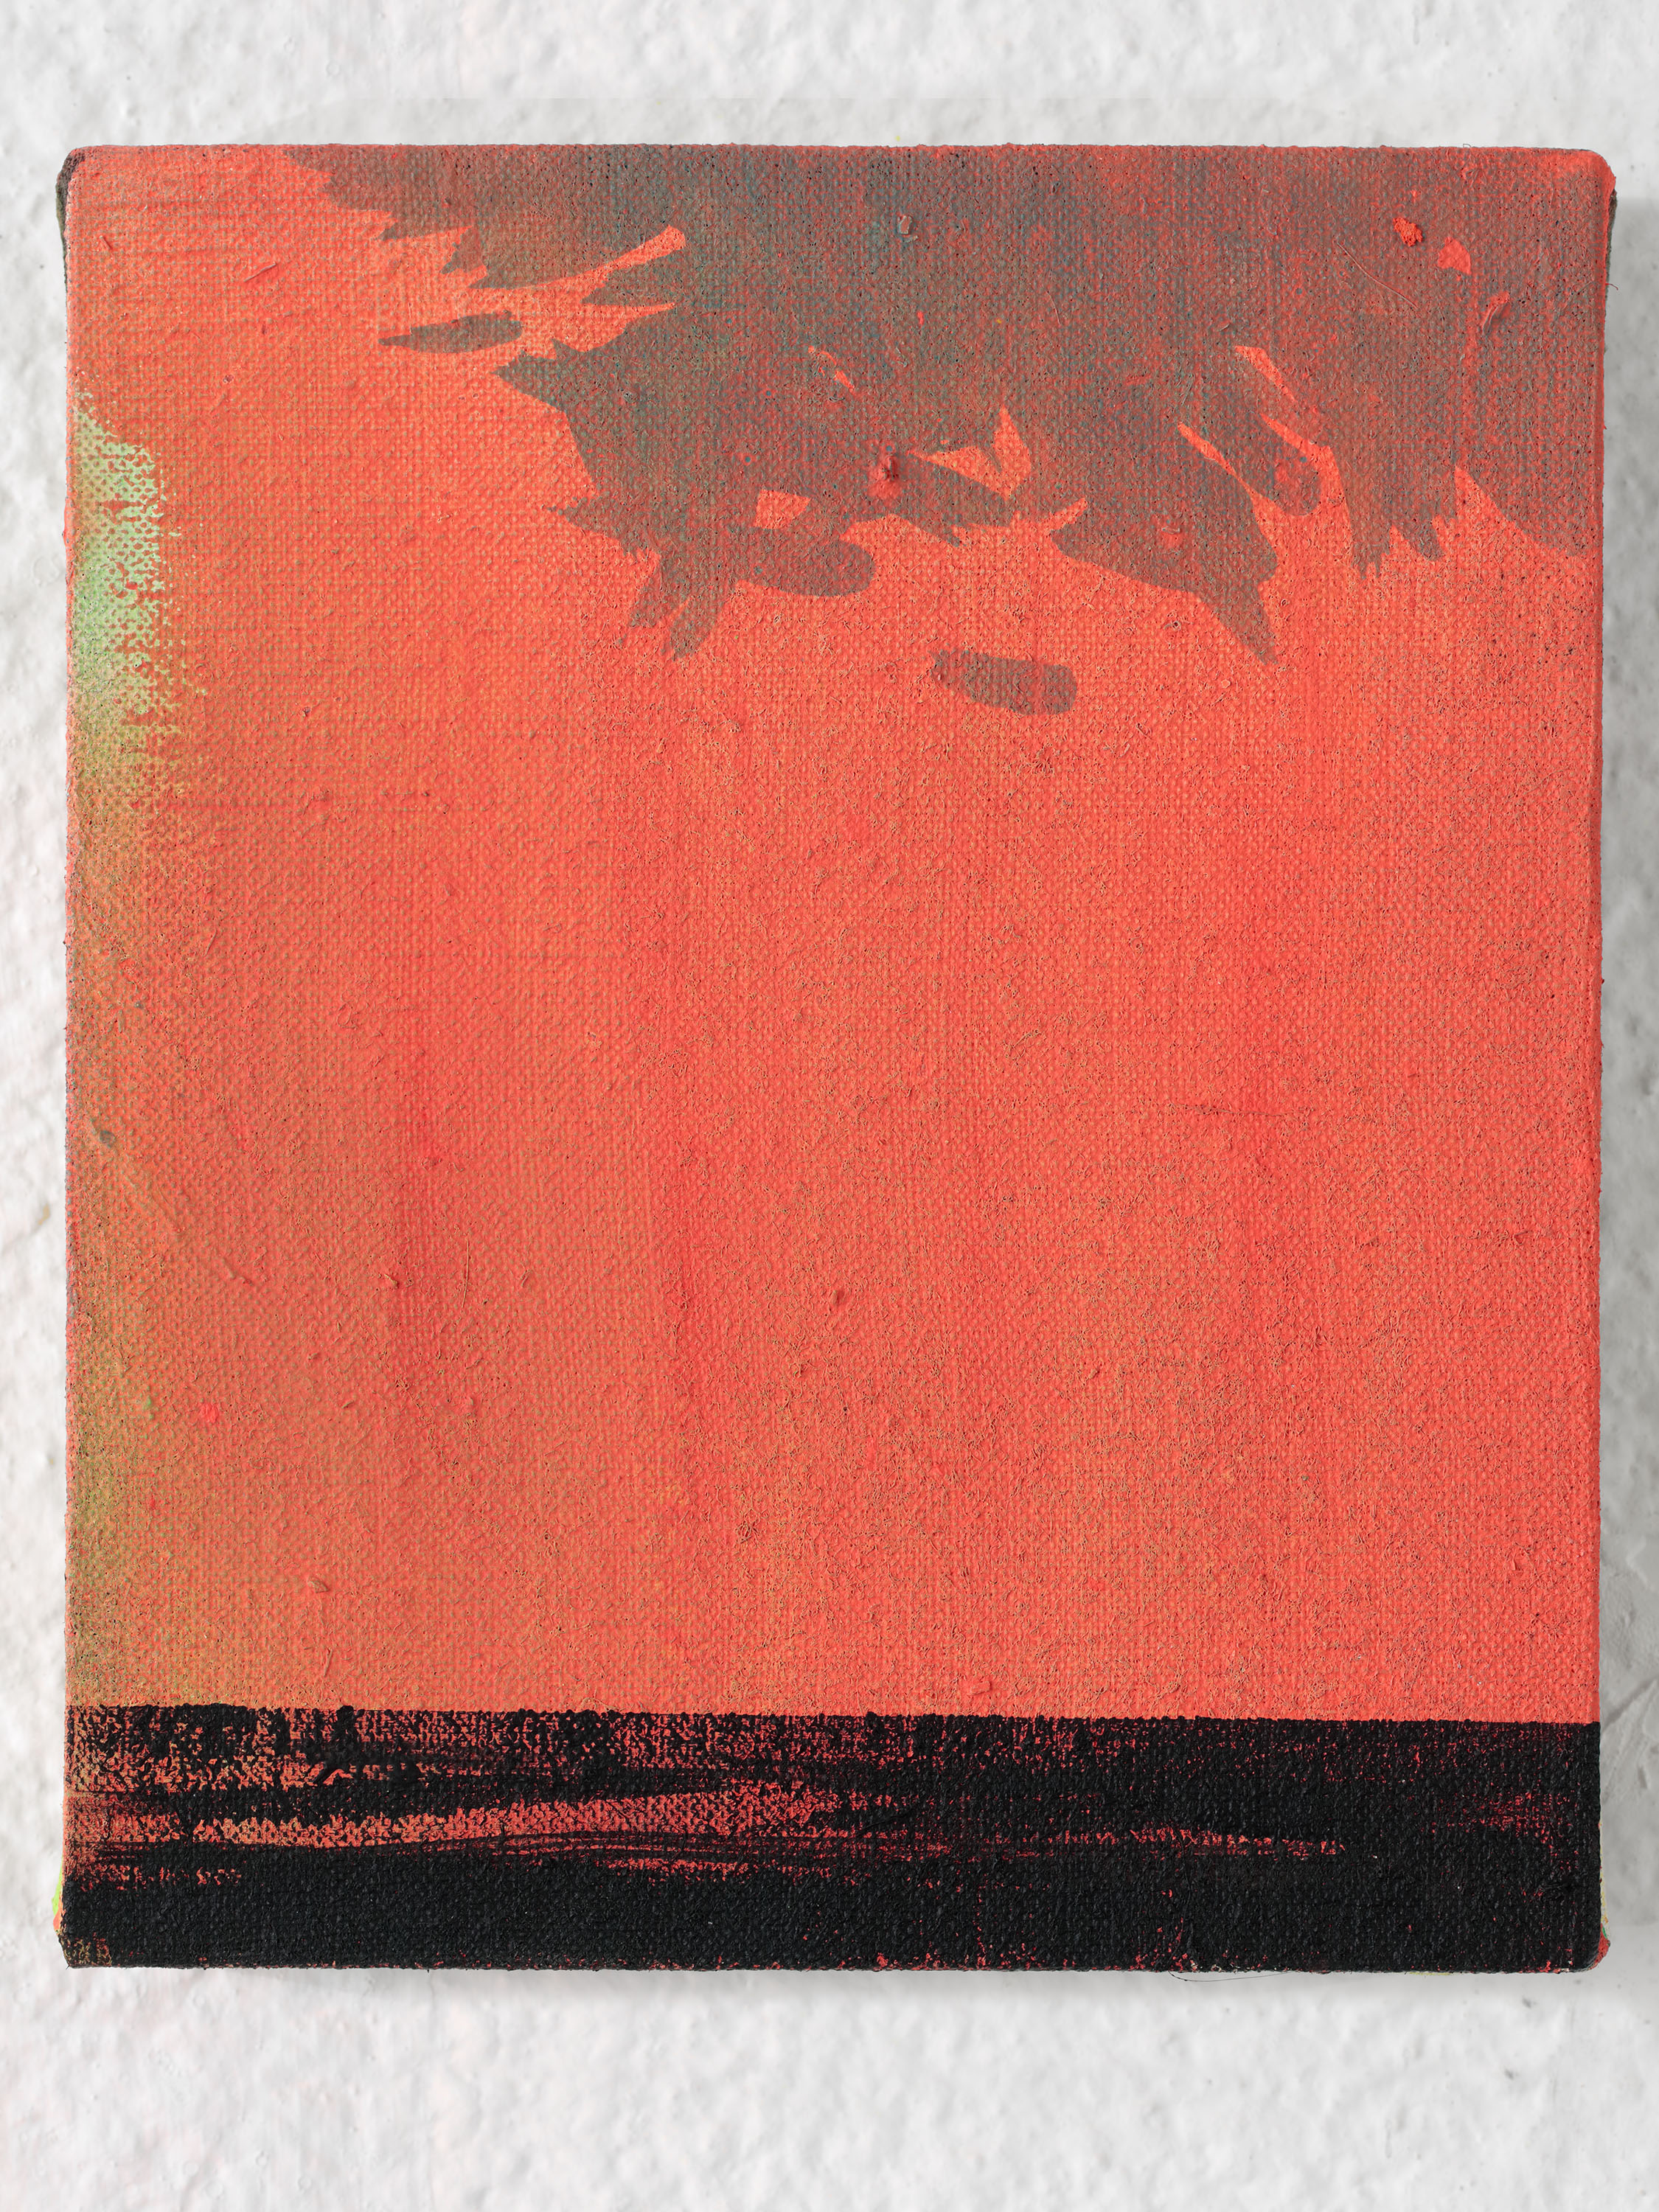 NO in the forest no. 3 : from the DATA series : 20x17cm : acrylic, canvas : 2108